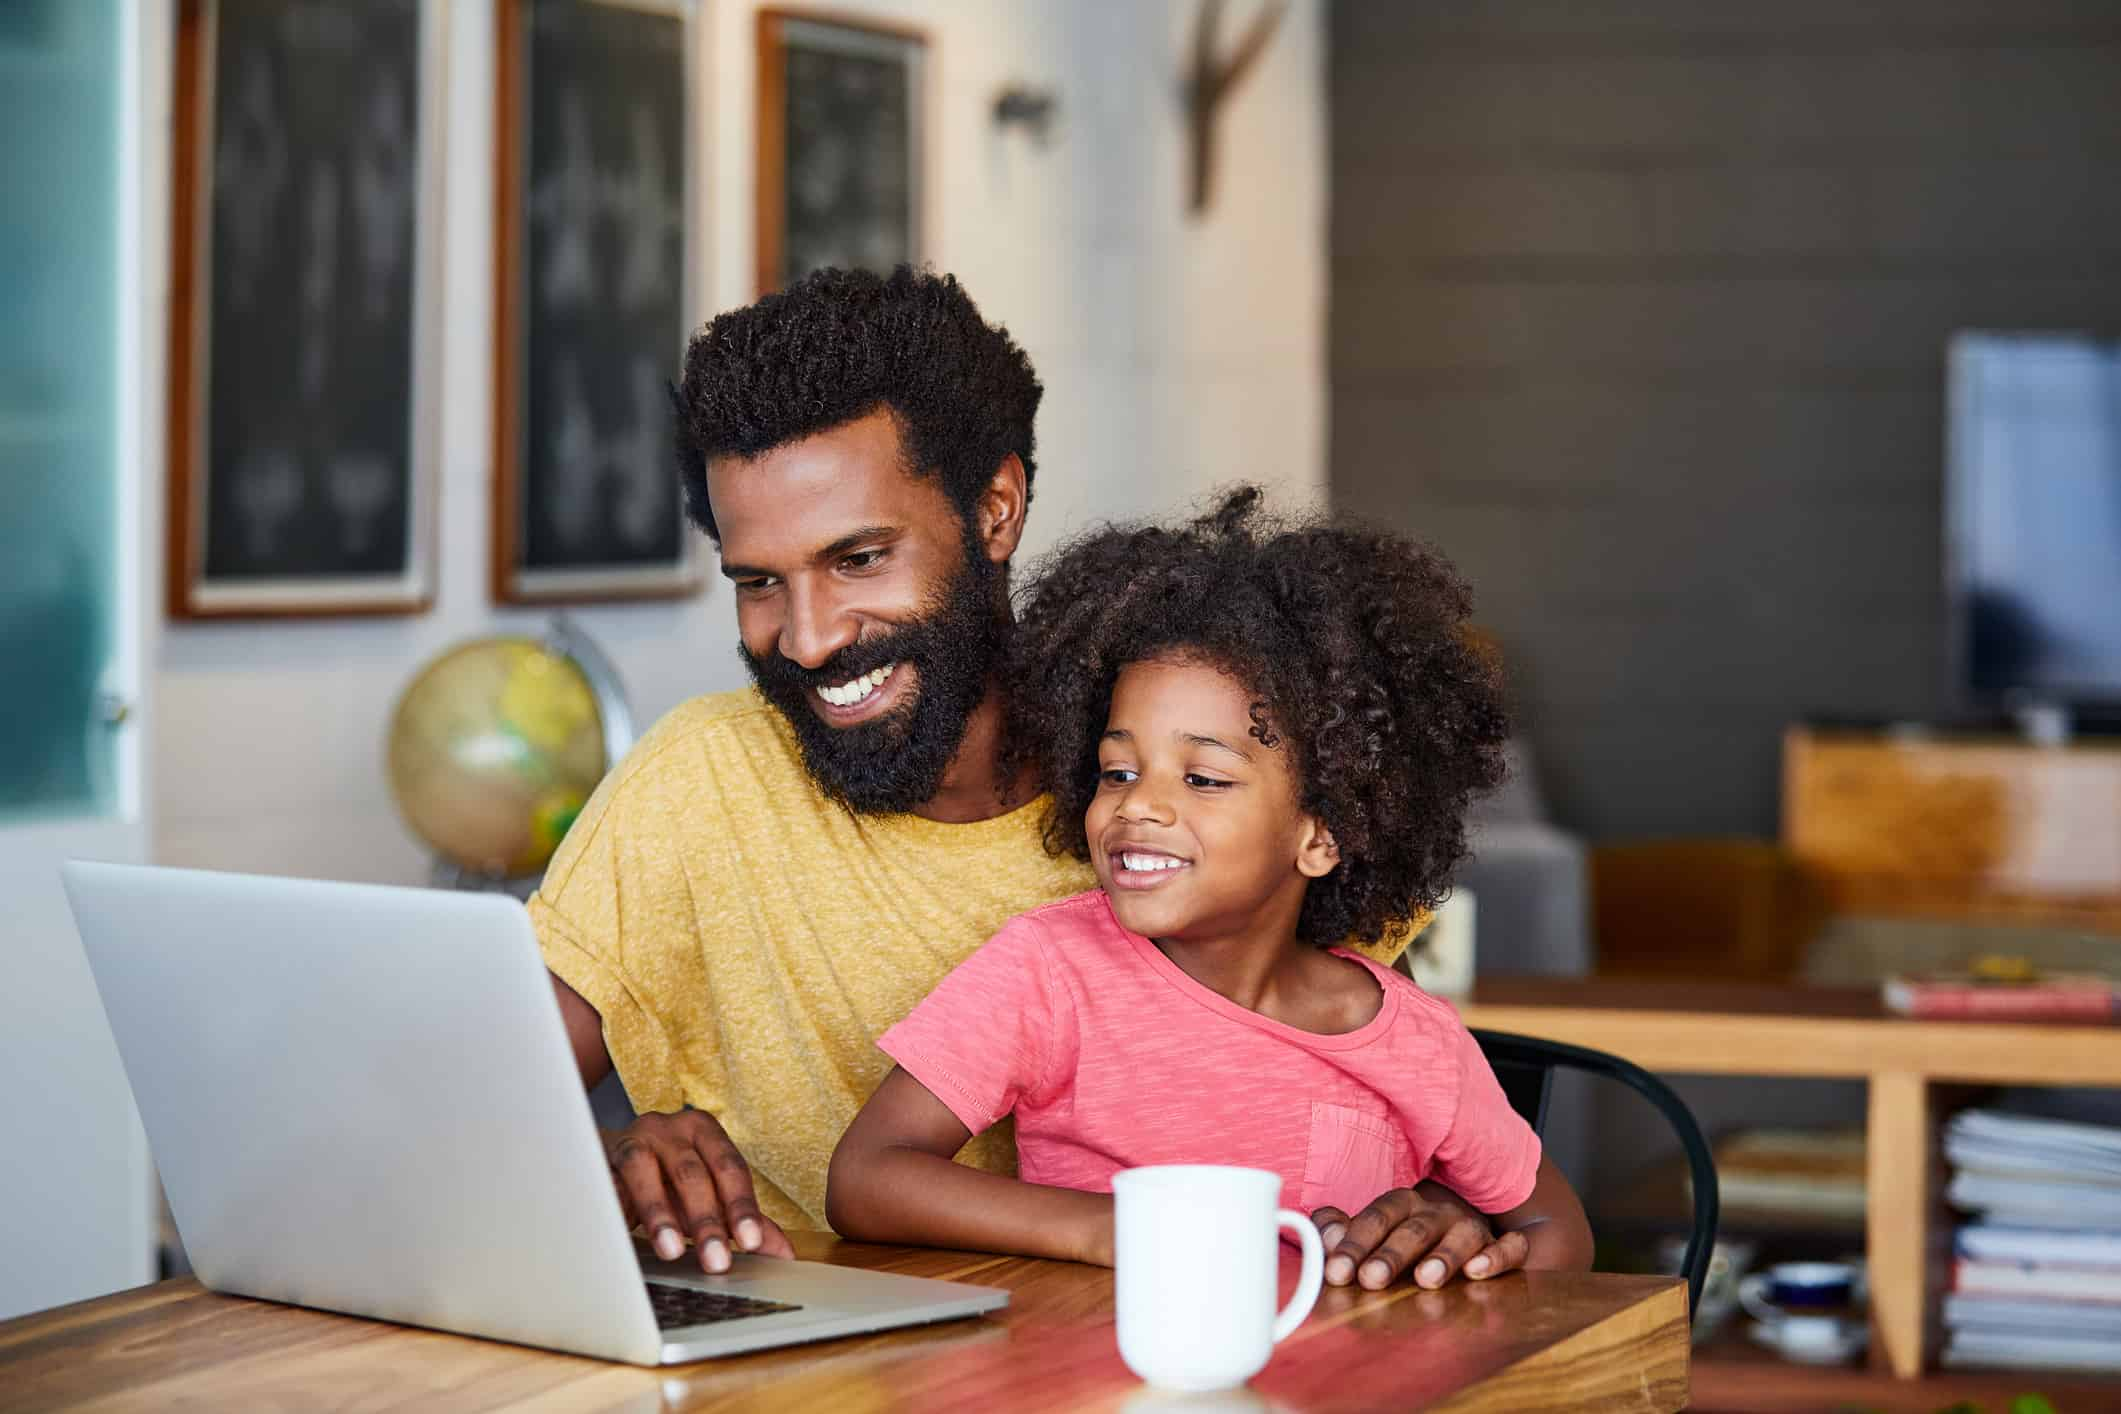 Father and daughter smiling at laptop